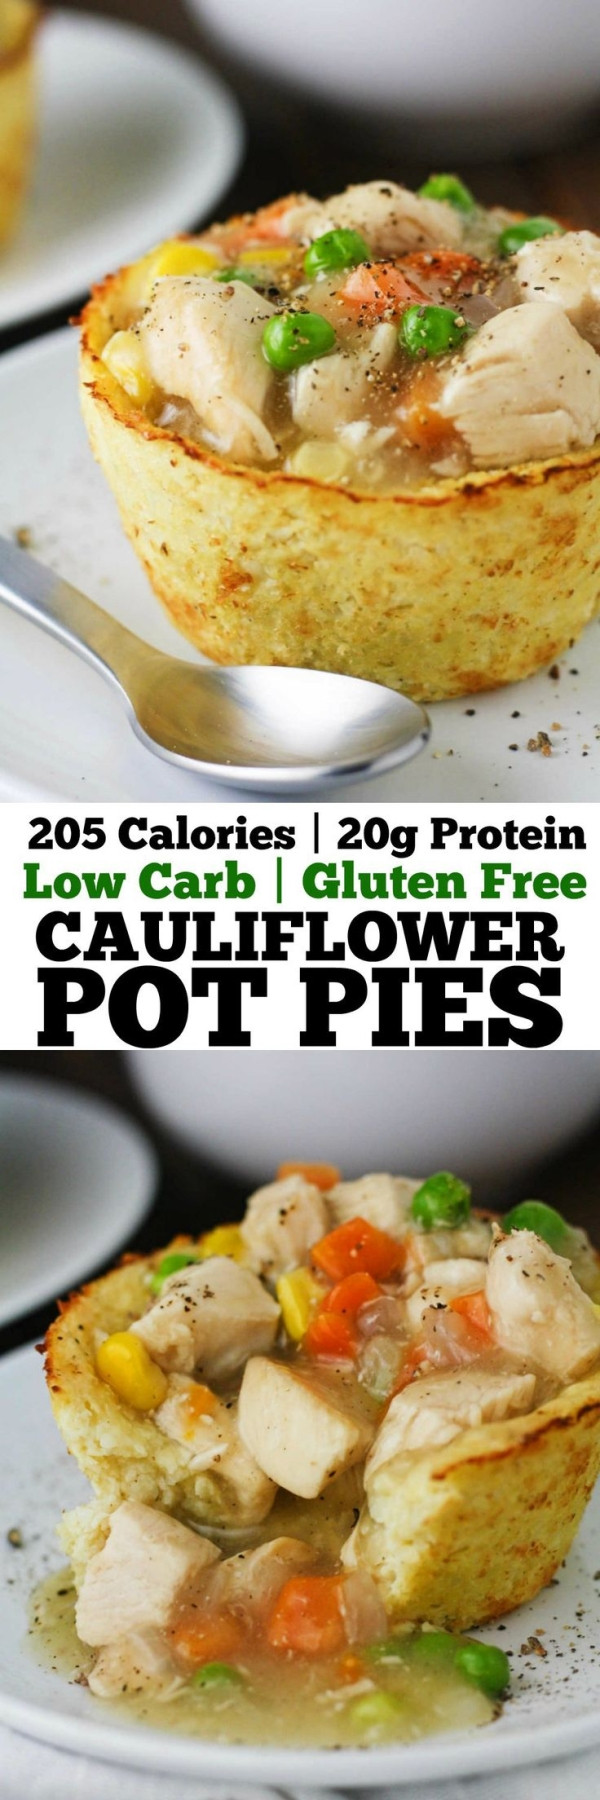 Low Calorie Chicken Pot Pie Recipe  These Low Carb Cauliflower Pot Pies have all the flavors